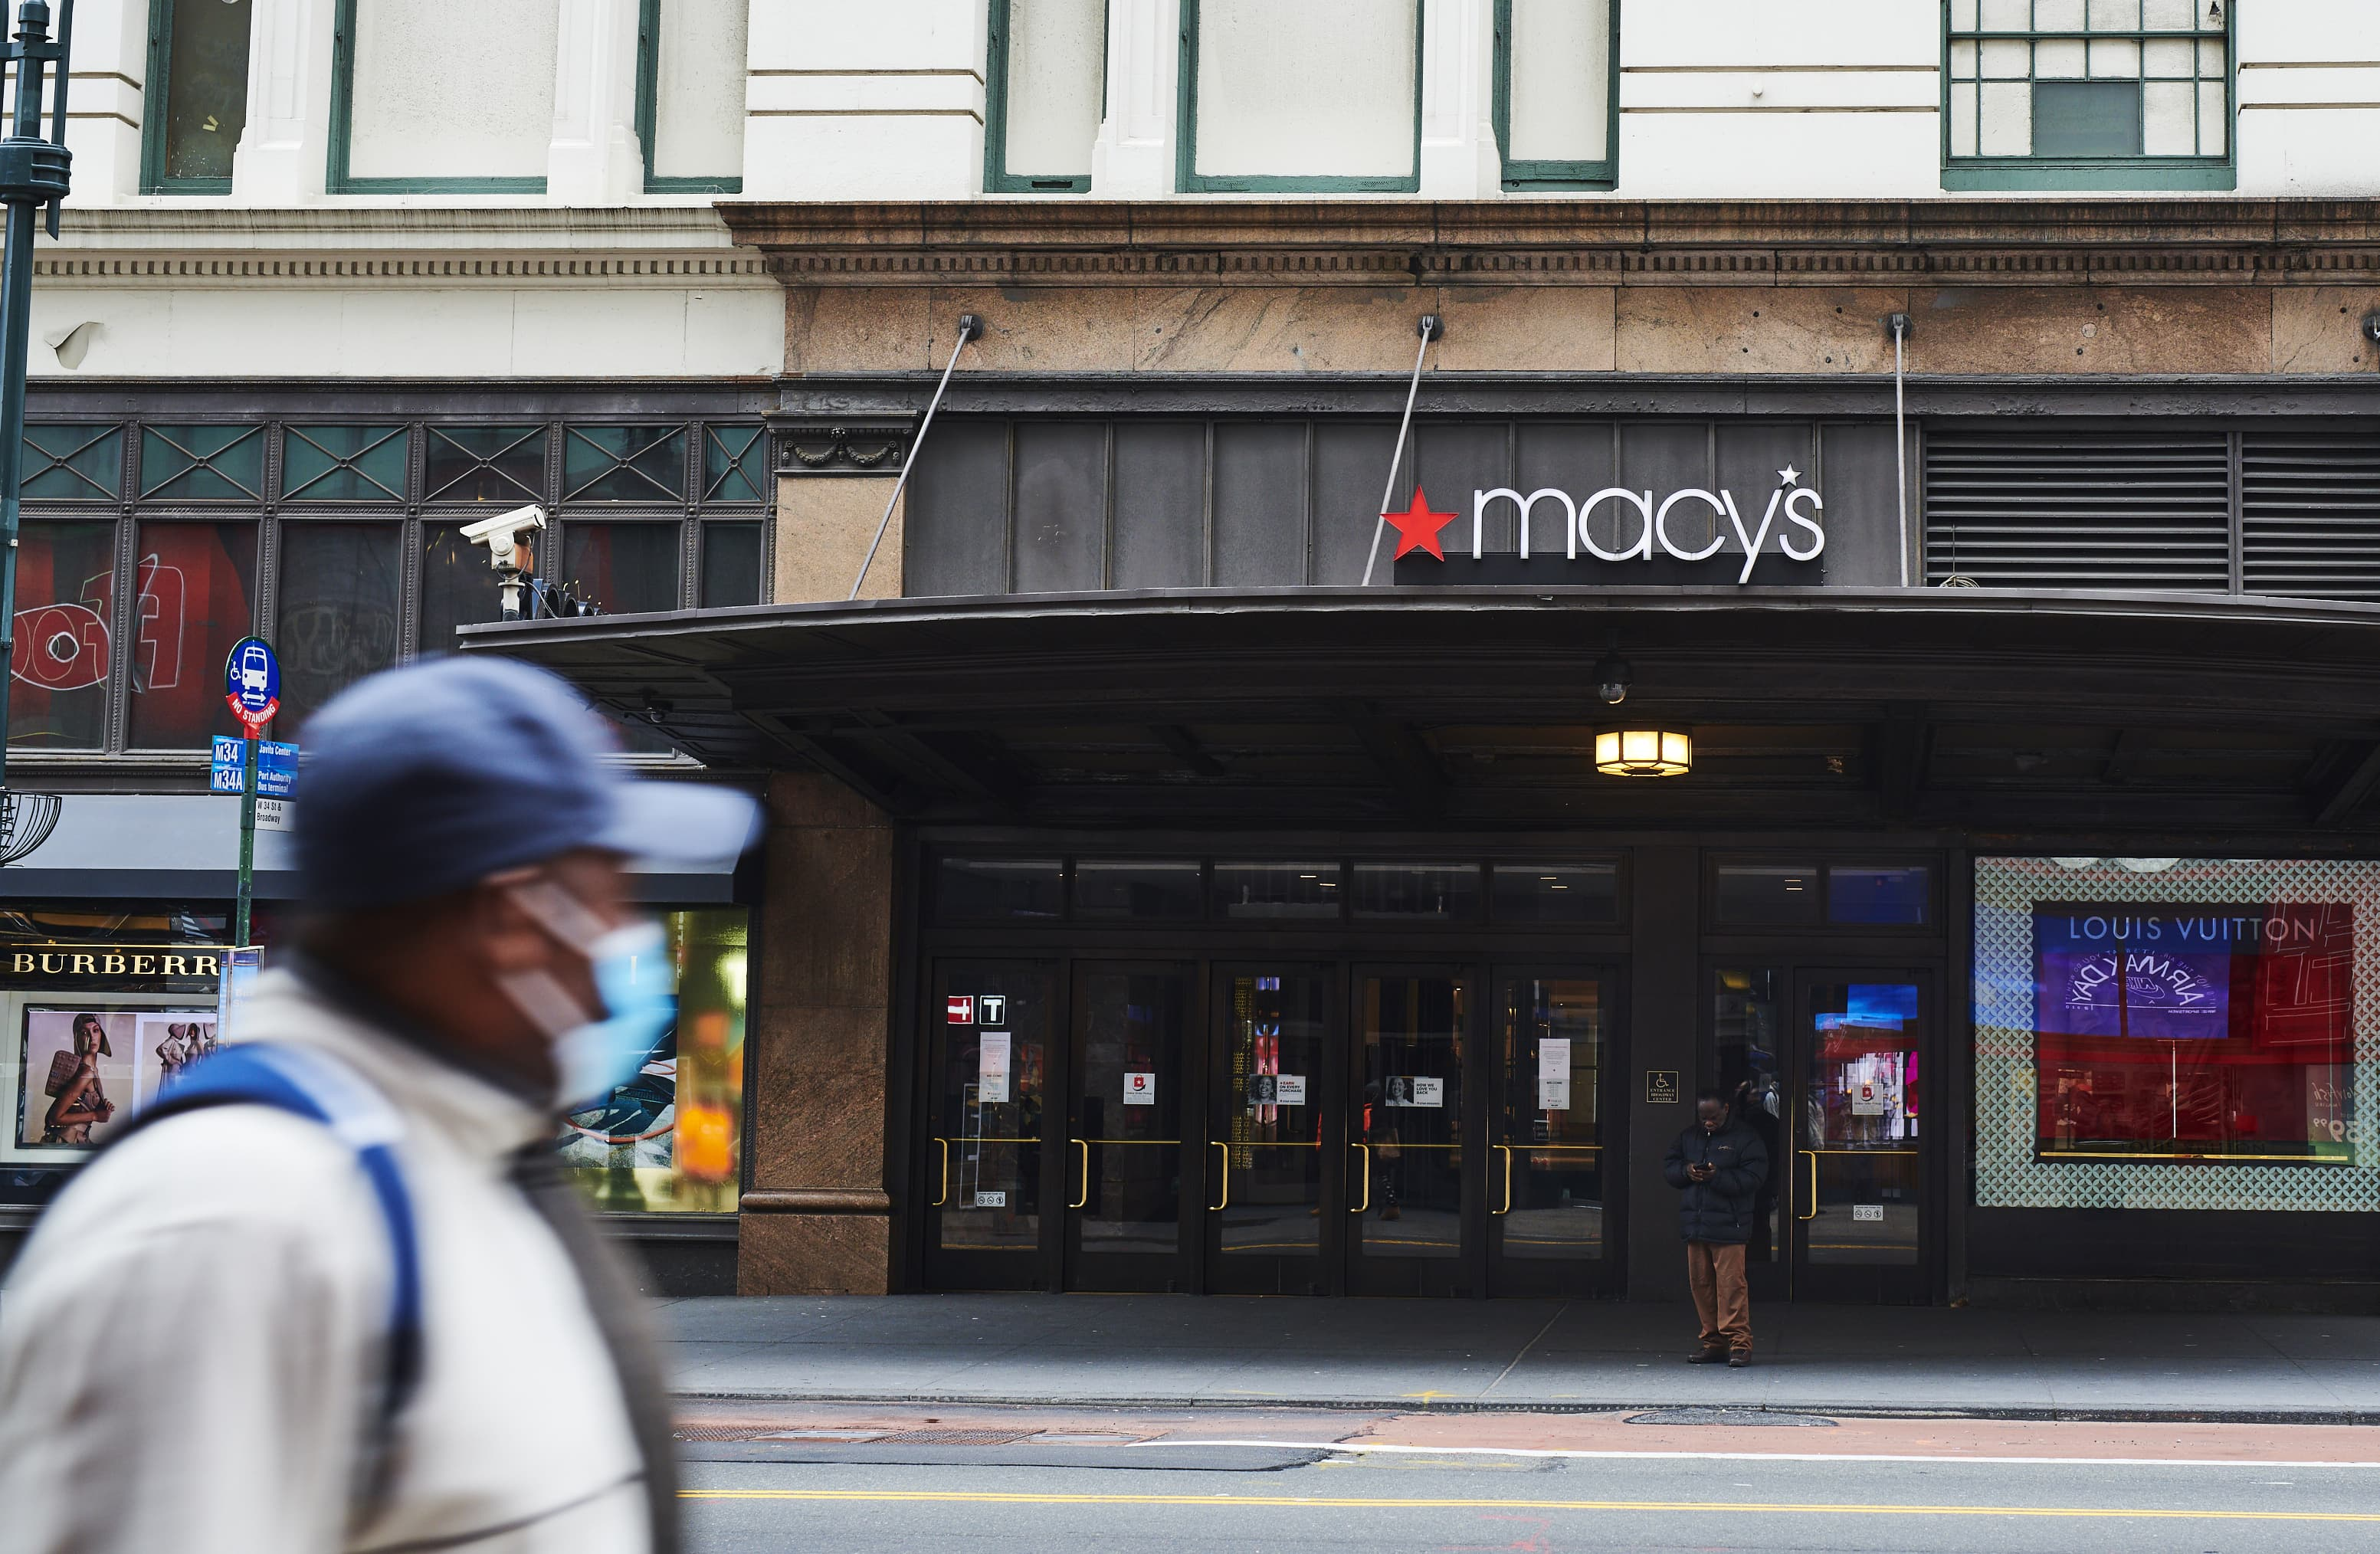 Macy's says it plans to have all of its stores reopened in 6 weeks